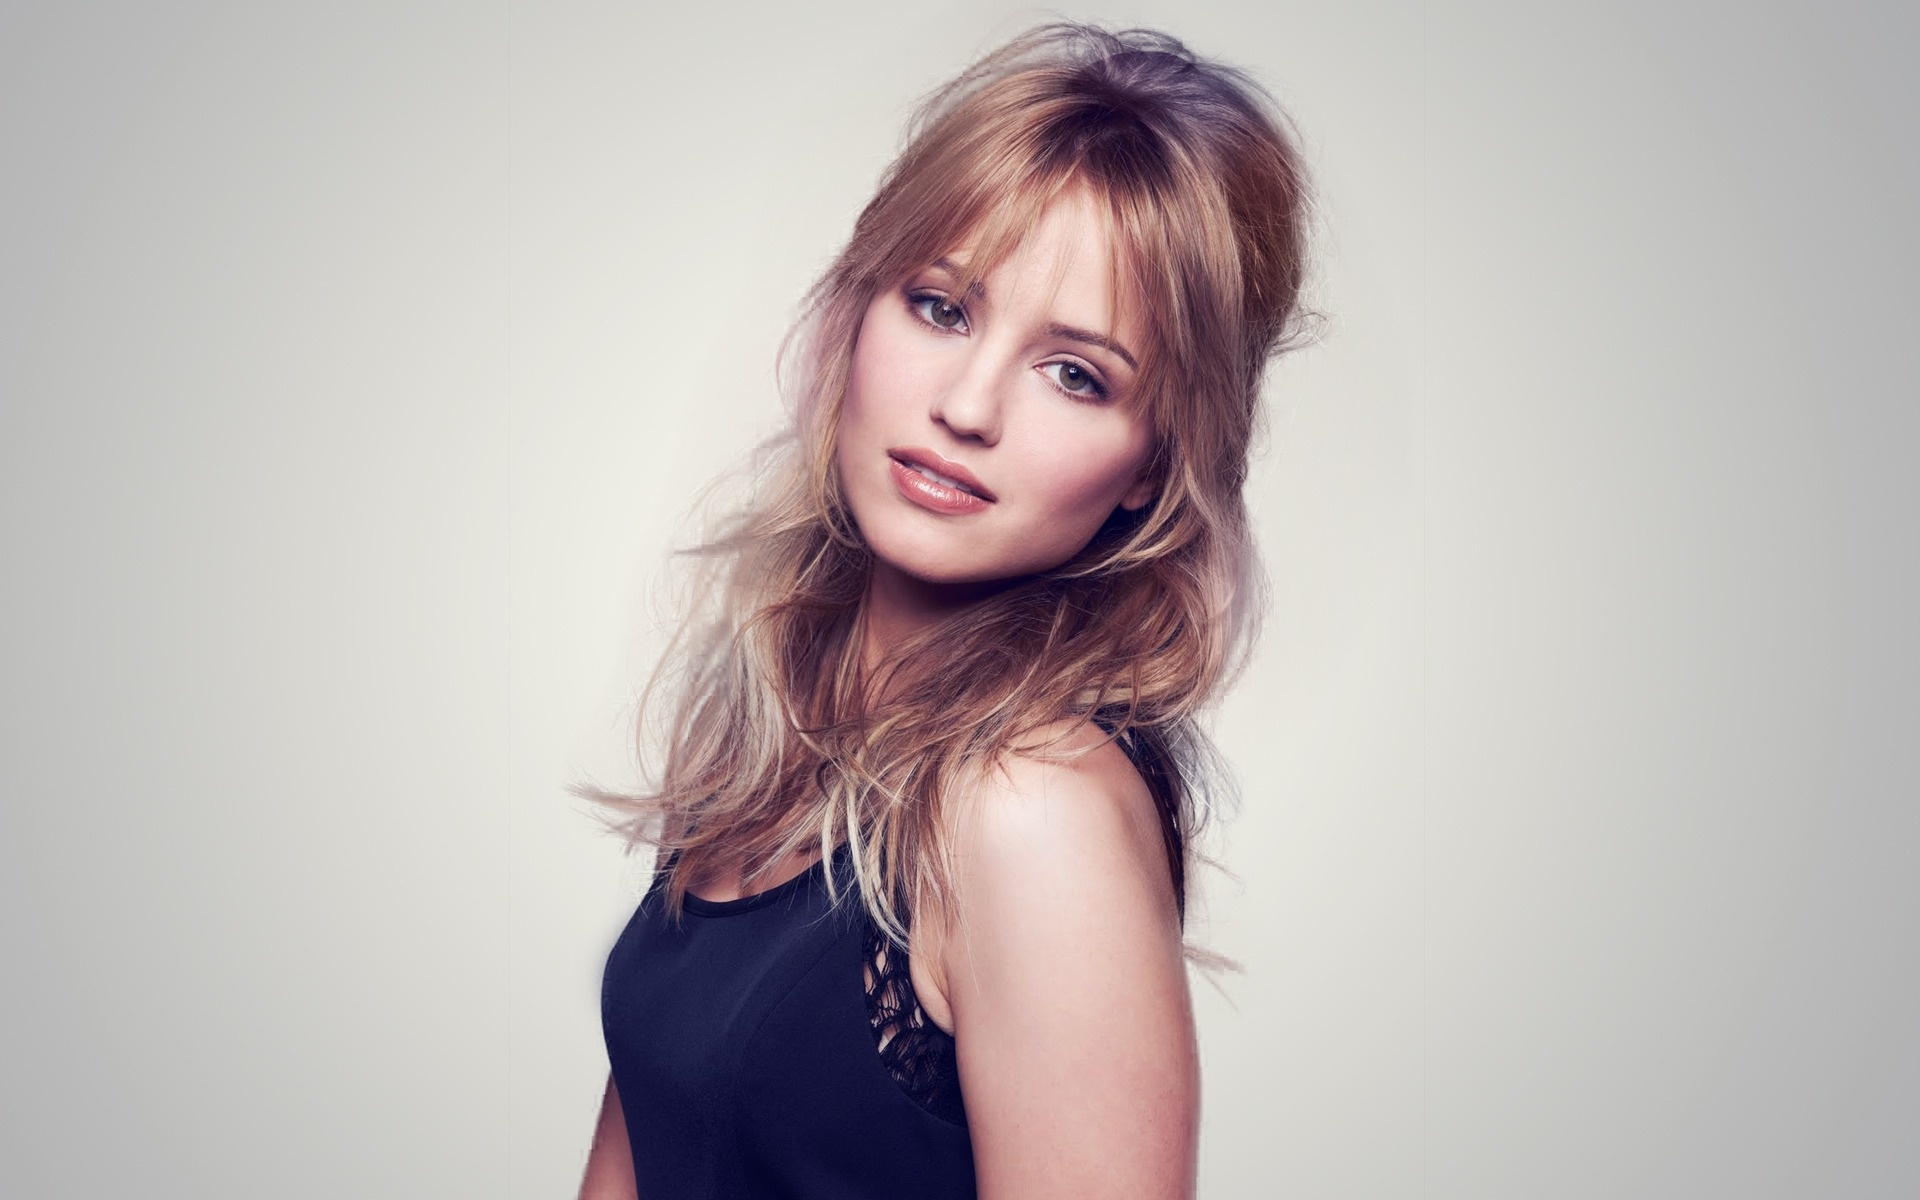 1920x1200 - Dianna Agron Wallpapers 28